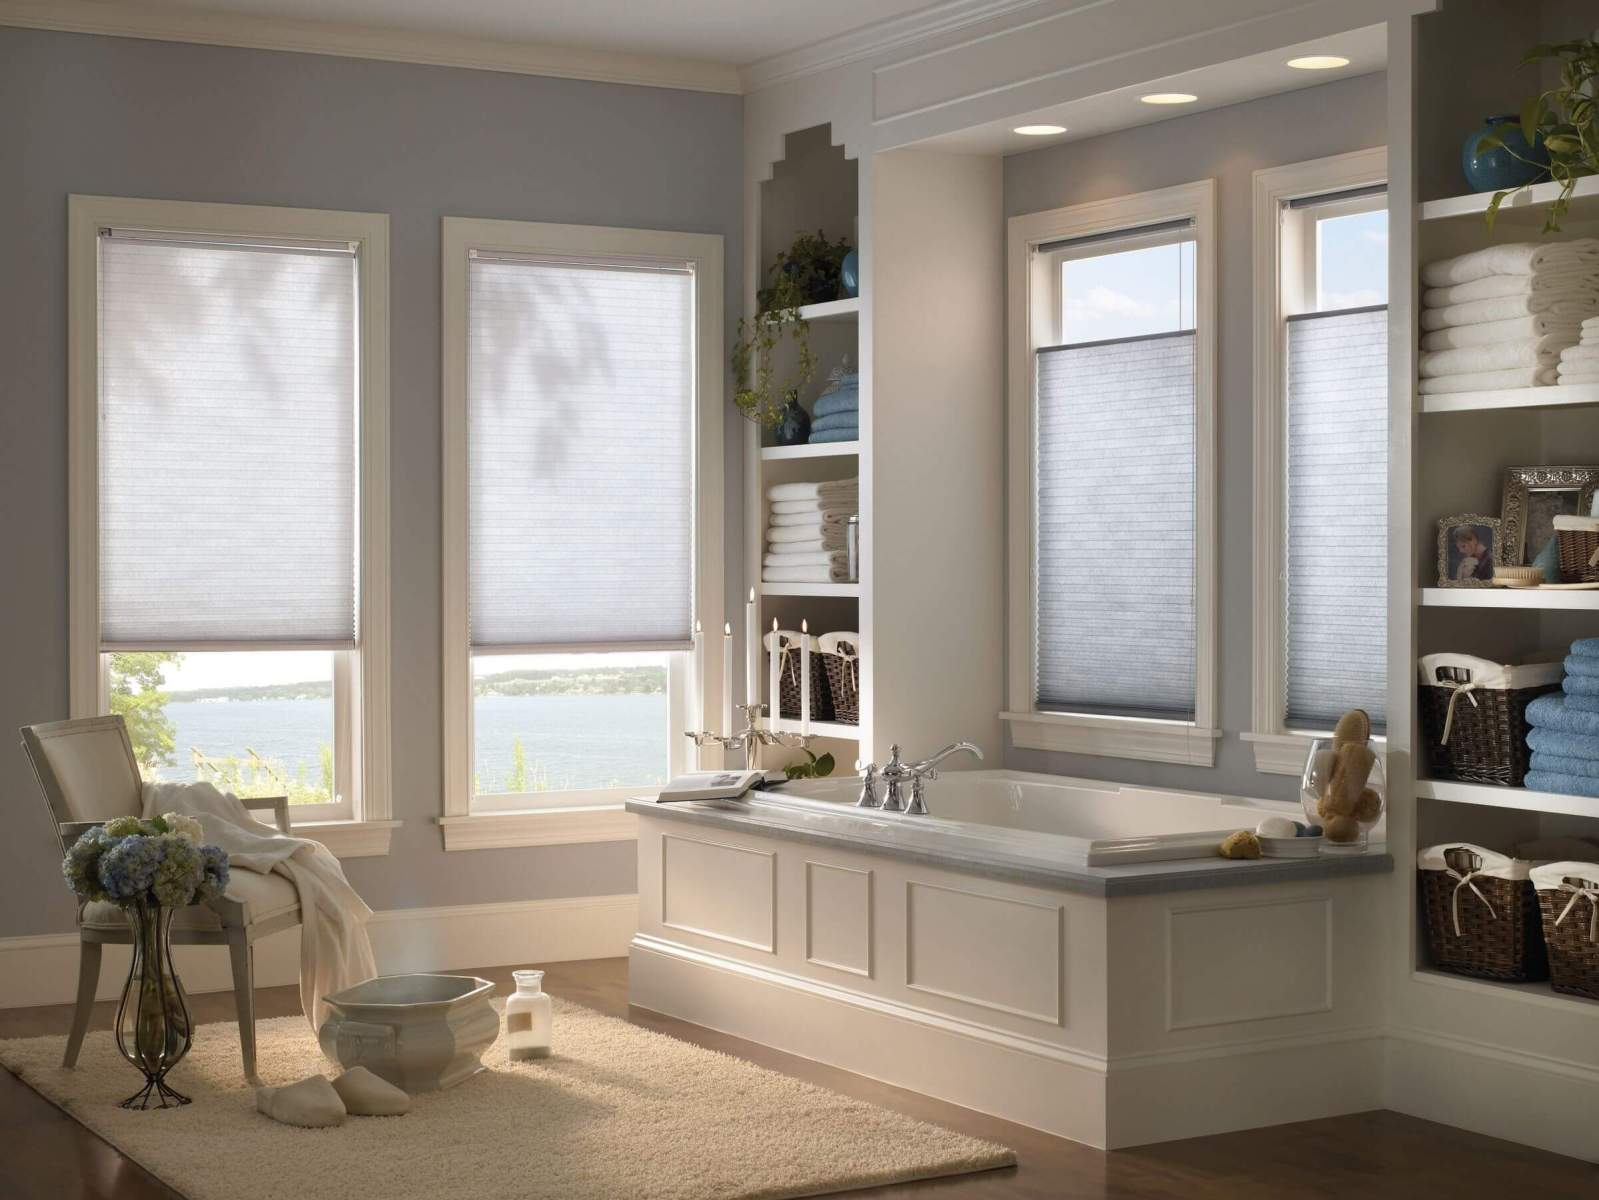 Timberblind Cary NC Shades And Shutters